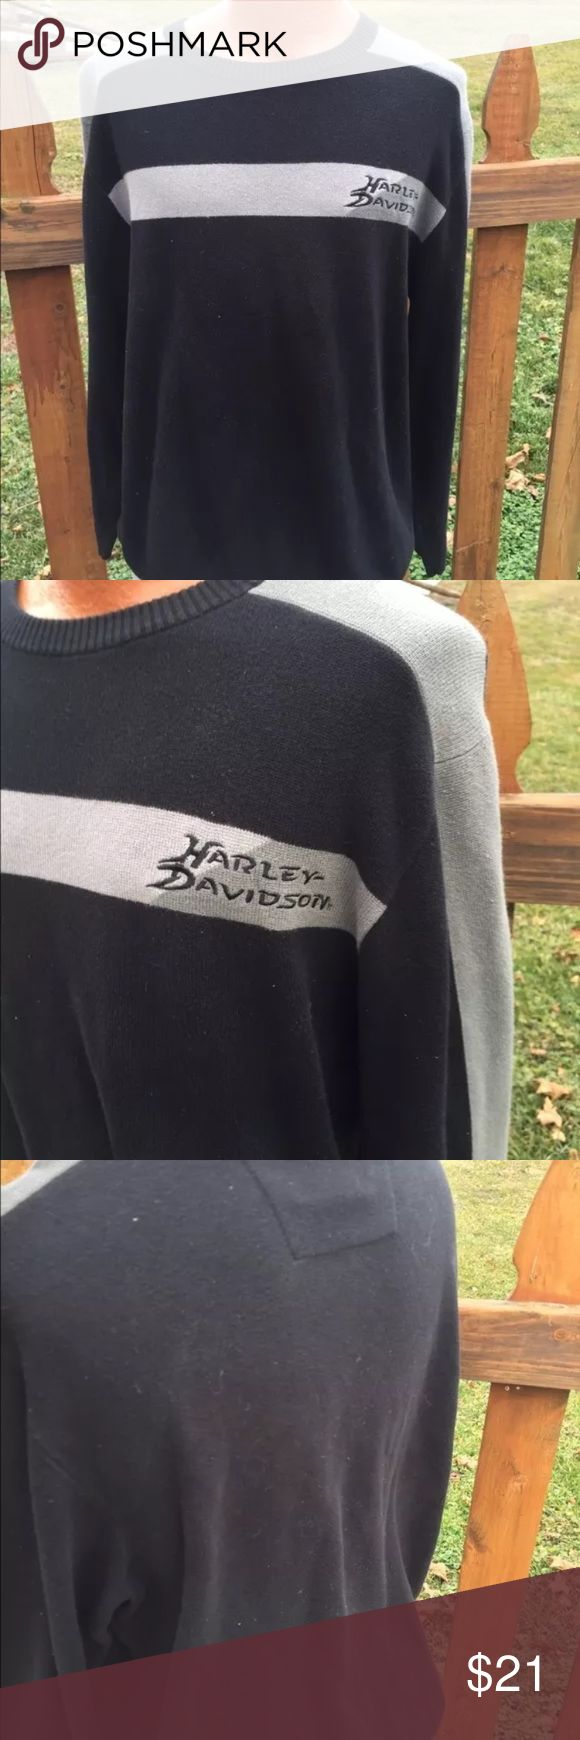 Harley Davidson Mens Sweater Size XL Size xl. Super gently preowned. Be sure to view the other items in our closet. We offer both women's and Mens items in a variety of sizes. Bundle and save!! Thank you for viewing our item!! Harley-Davidson Sweaters Crewneck